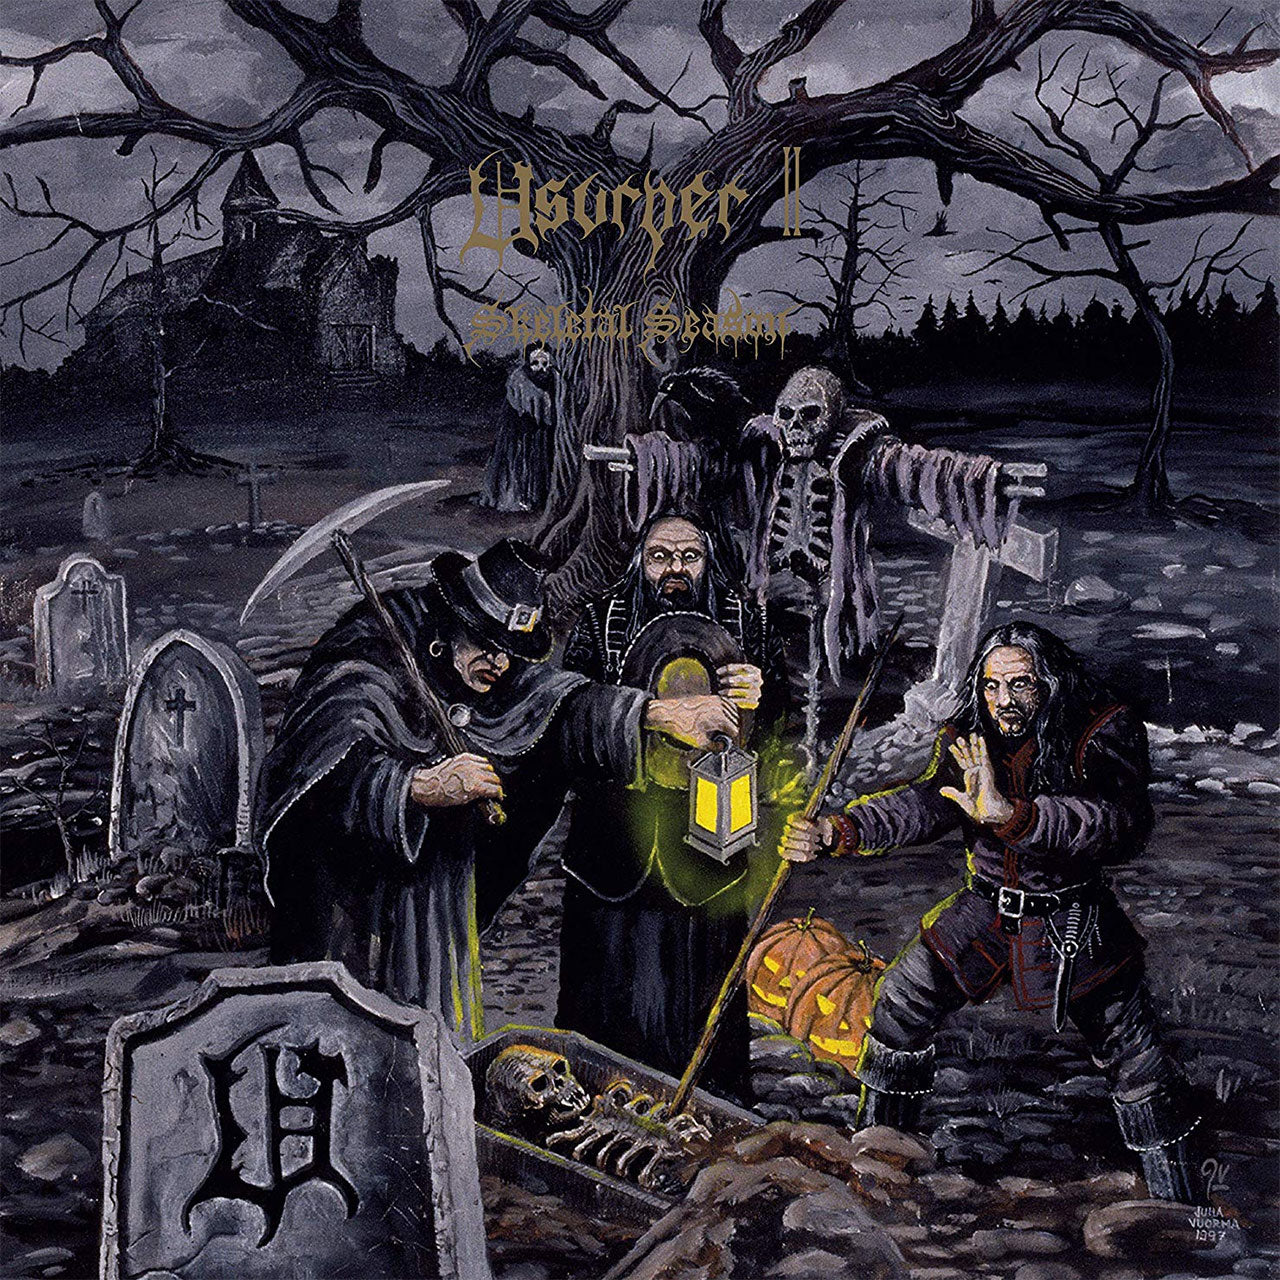 Usurper - Skeletal Season (2019 Reissue) (LP)